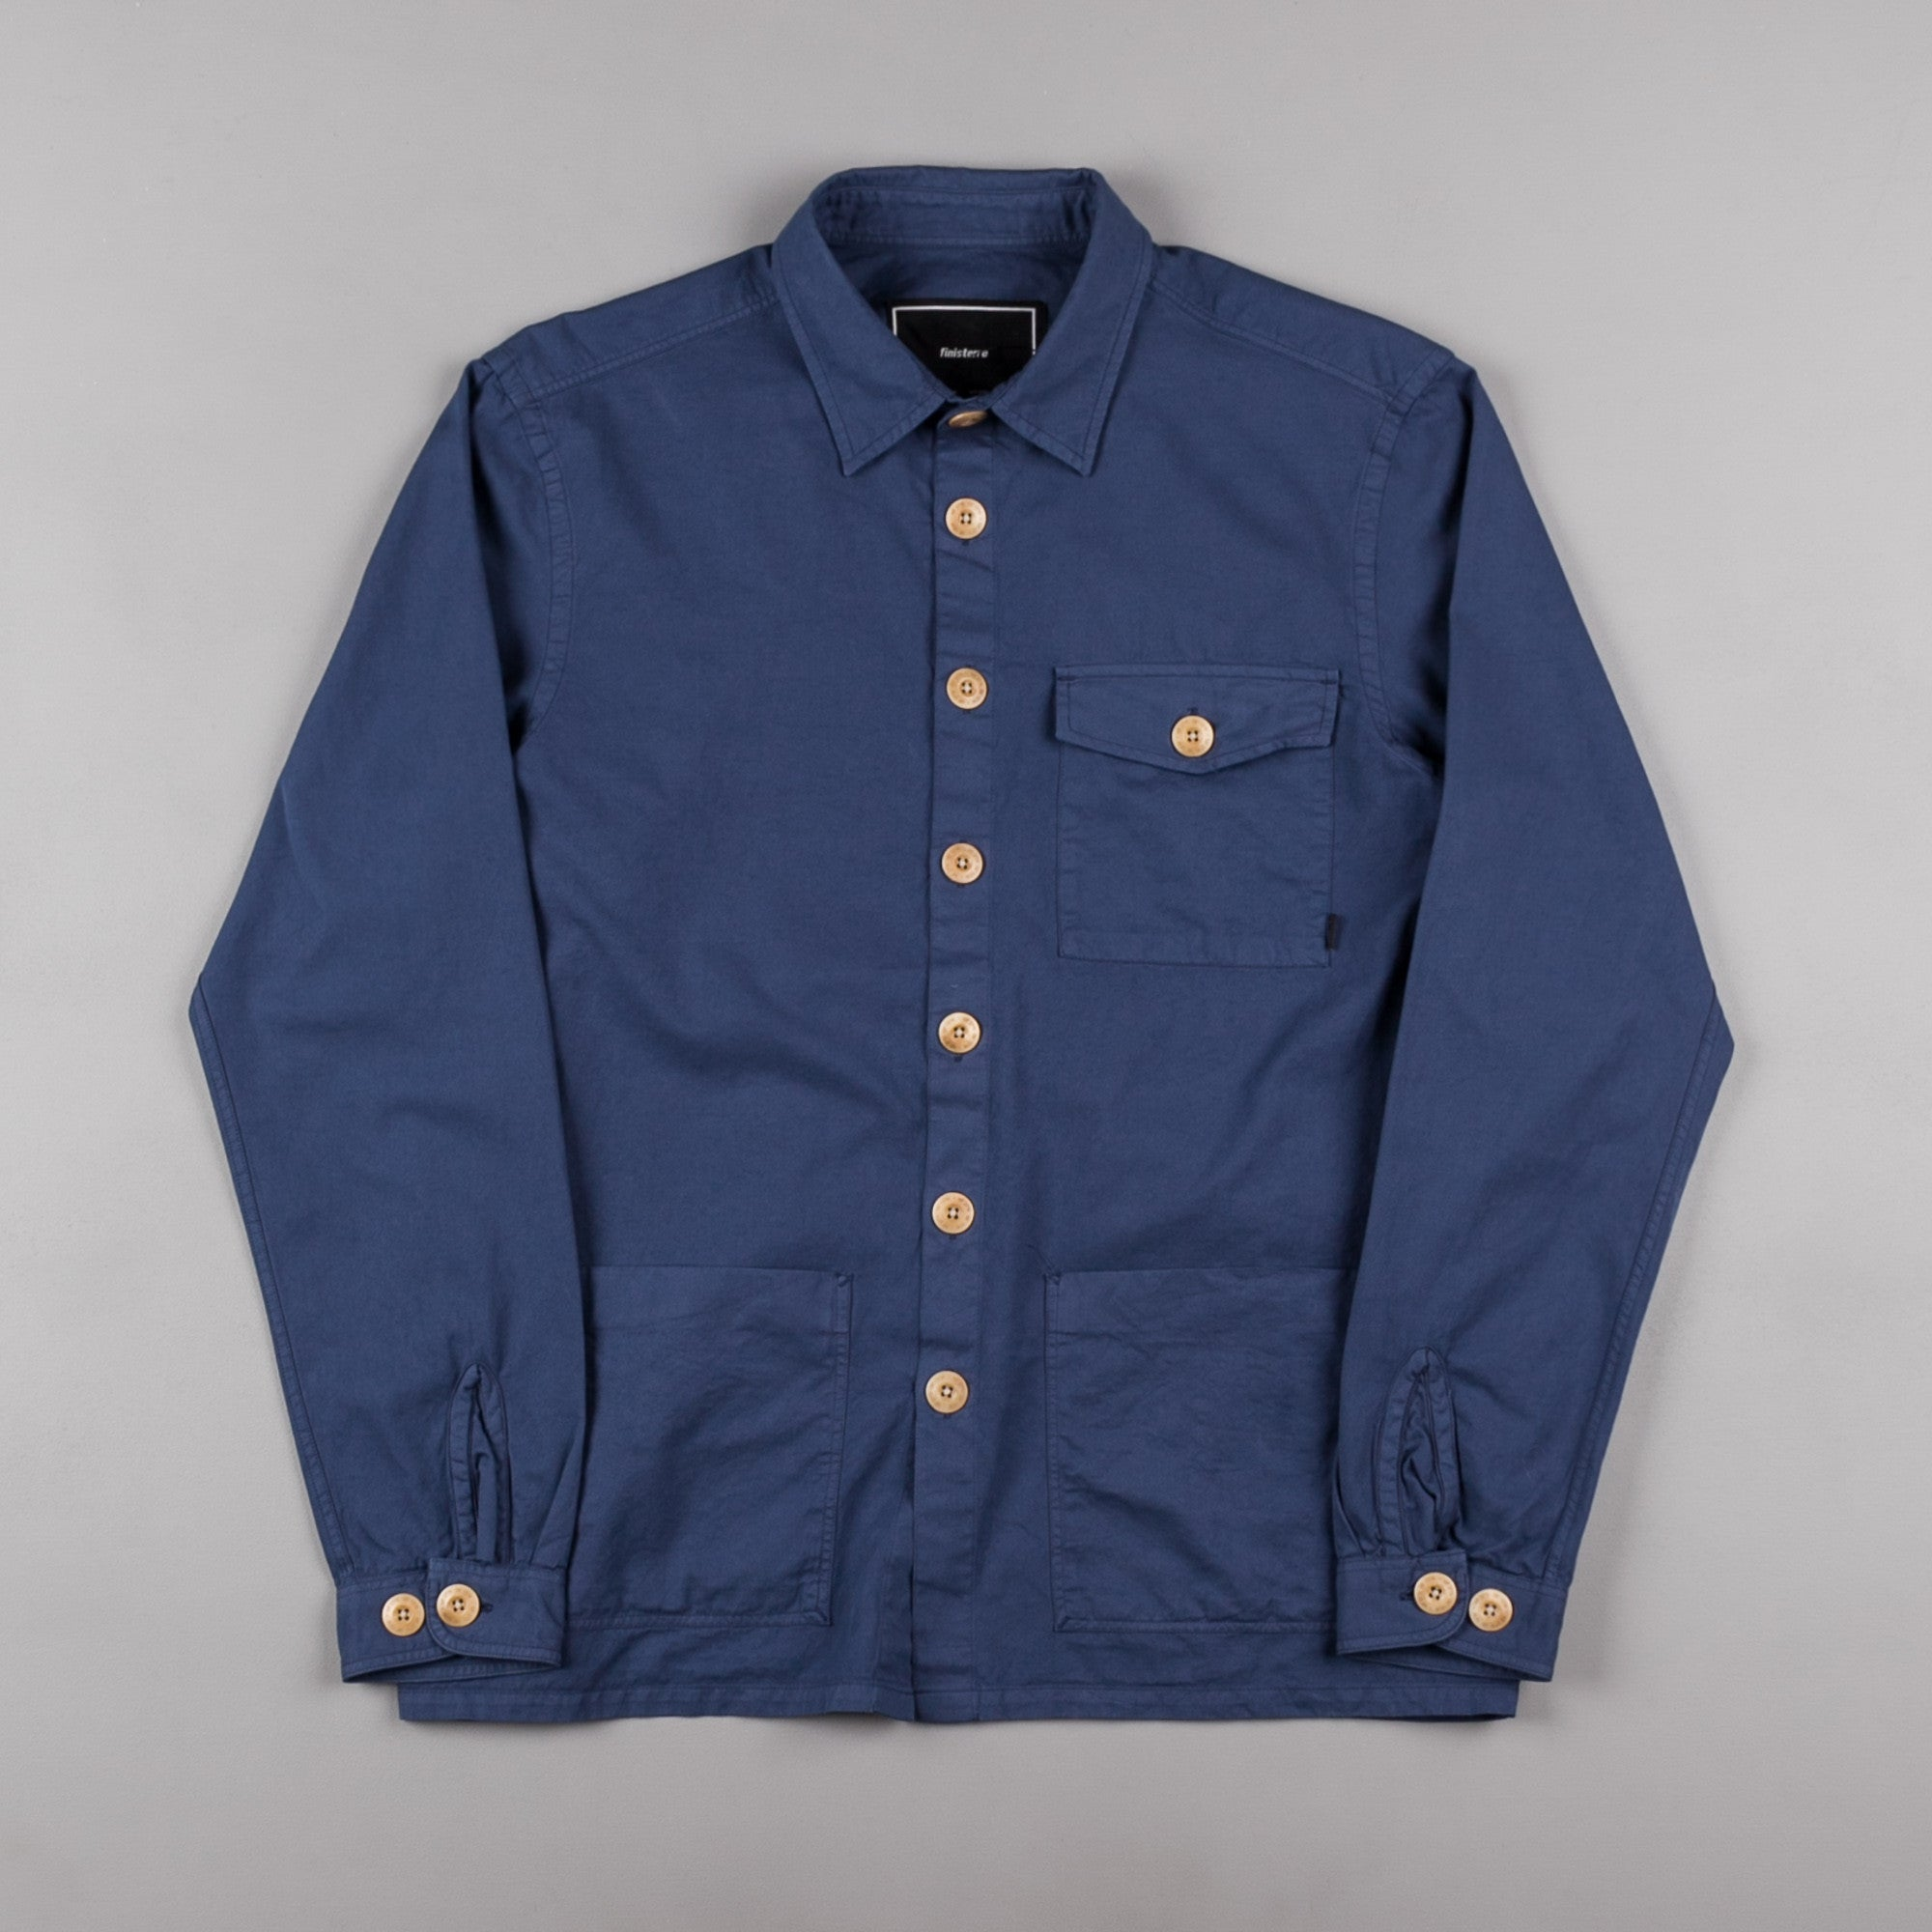 Finisterre Petrichor Shirt - Mariner Blue